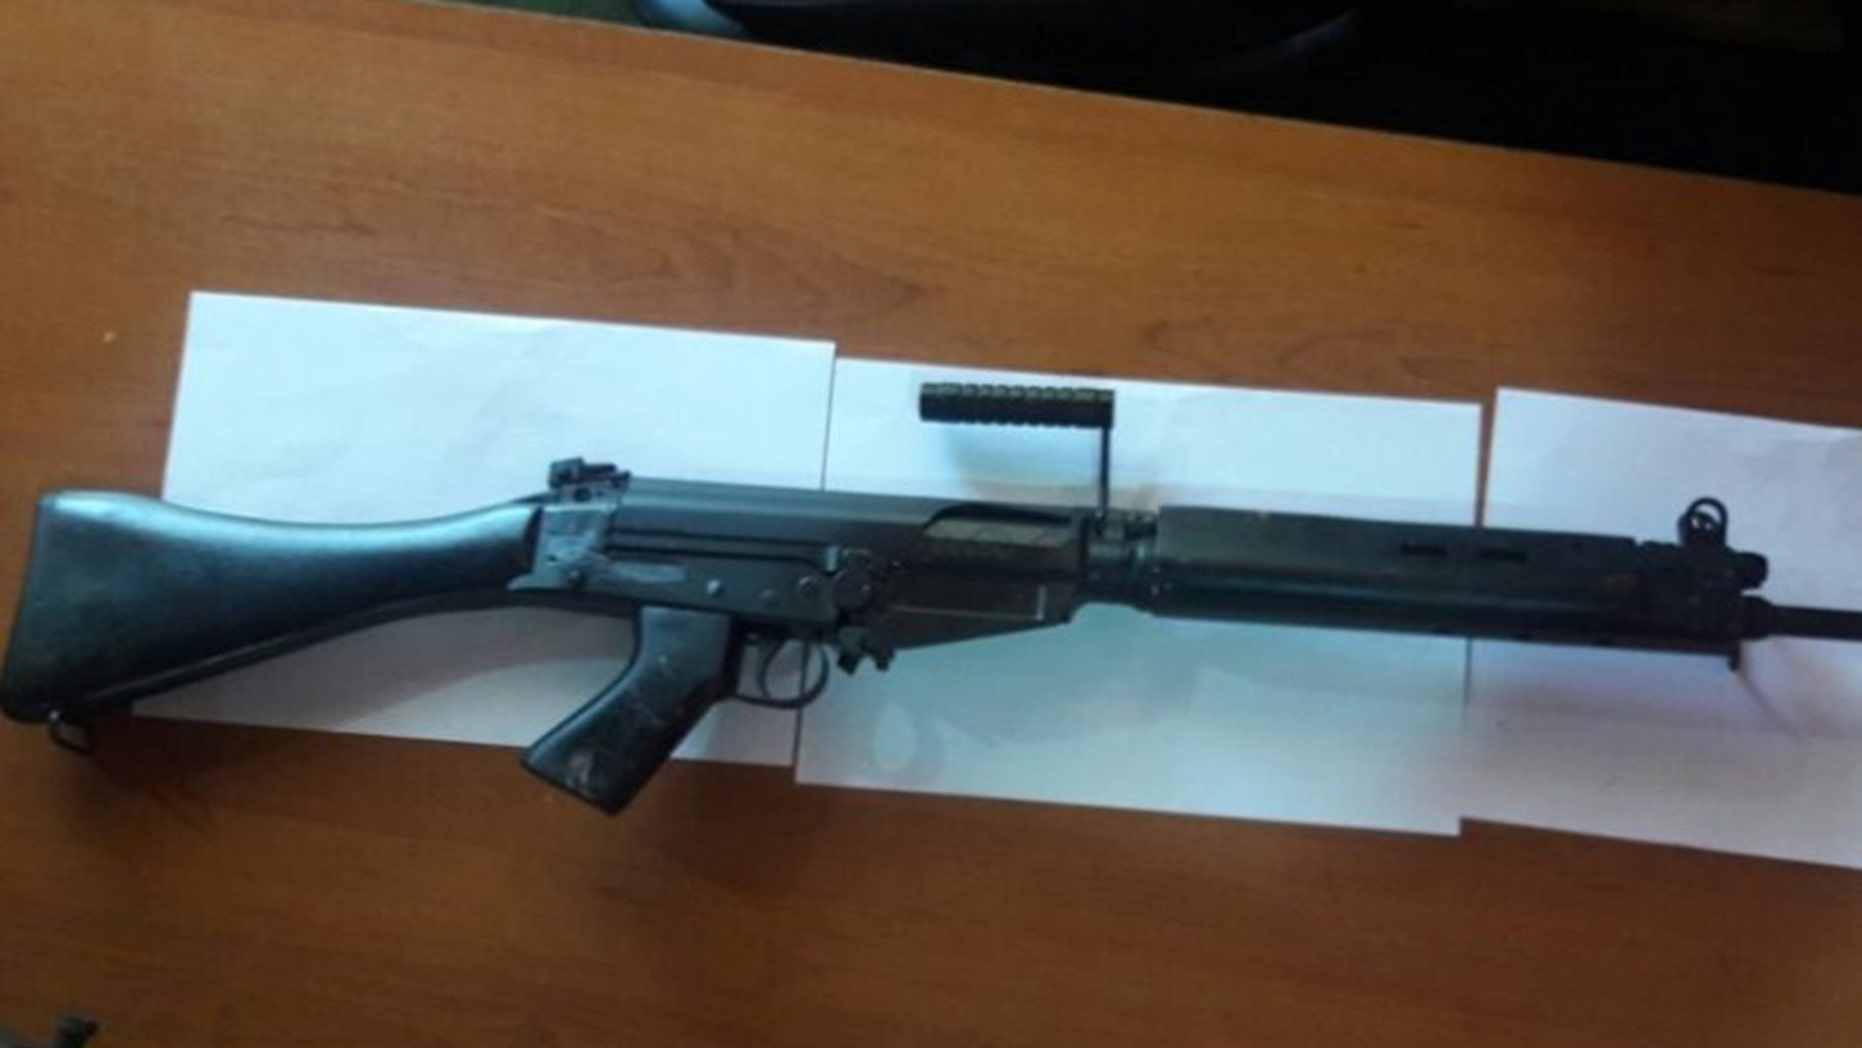 Paraguay police say thieves stole 42 rifles and replaced them with these wooden and plastic toy replicas.